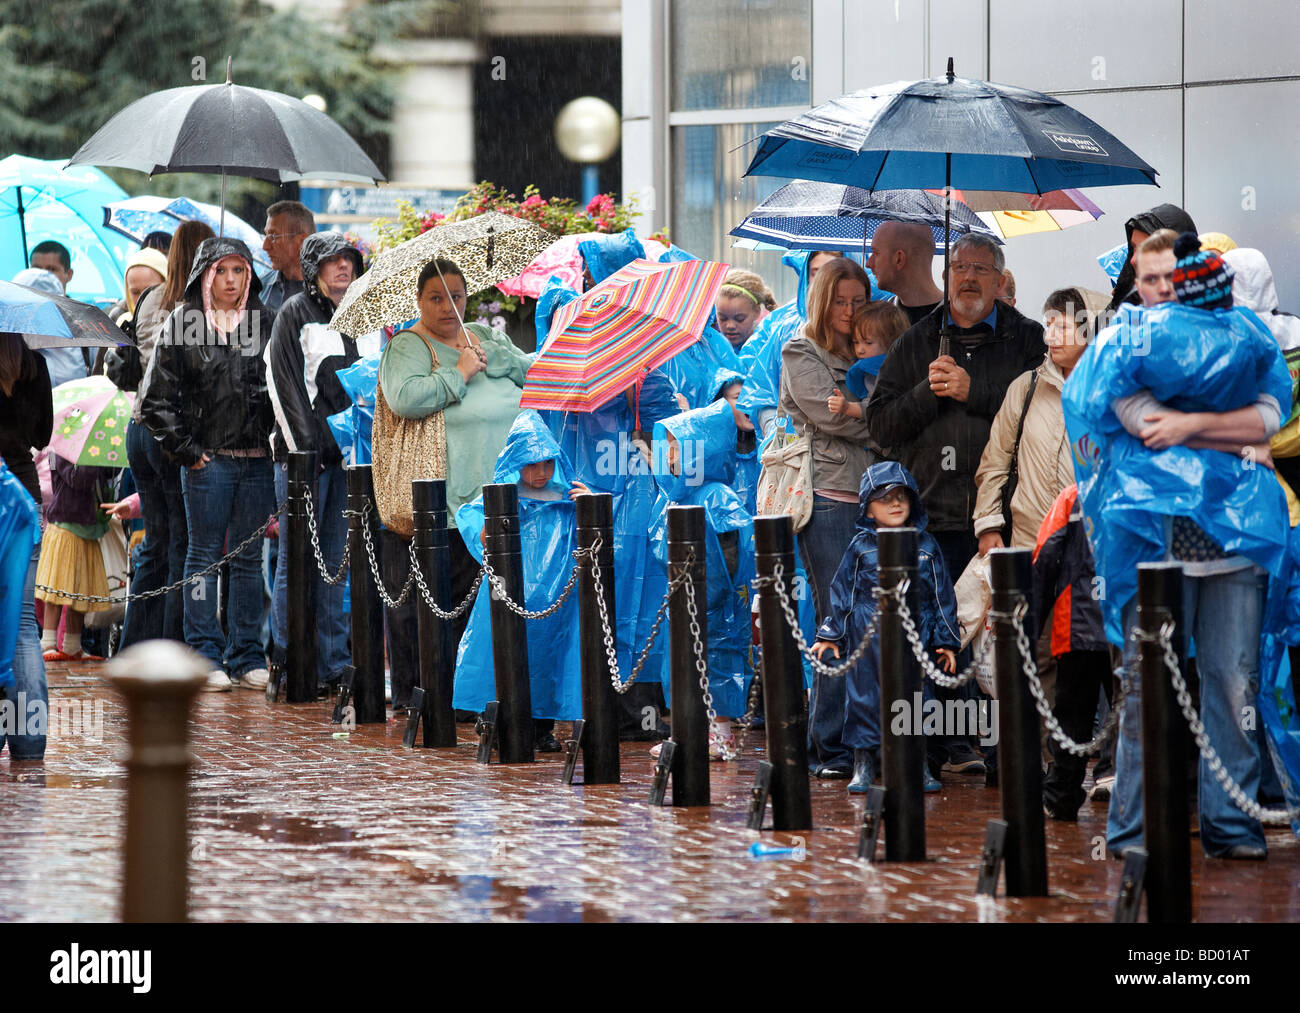 Visitors to the Sealife Centre in Birmingham, UK, queue outside in the rain. - Stock Image